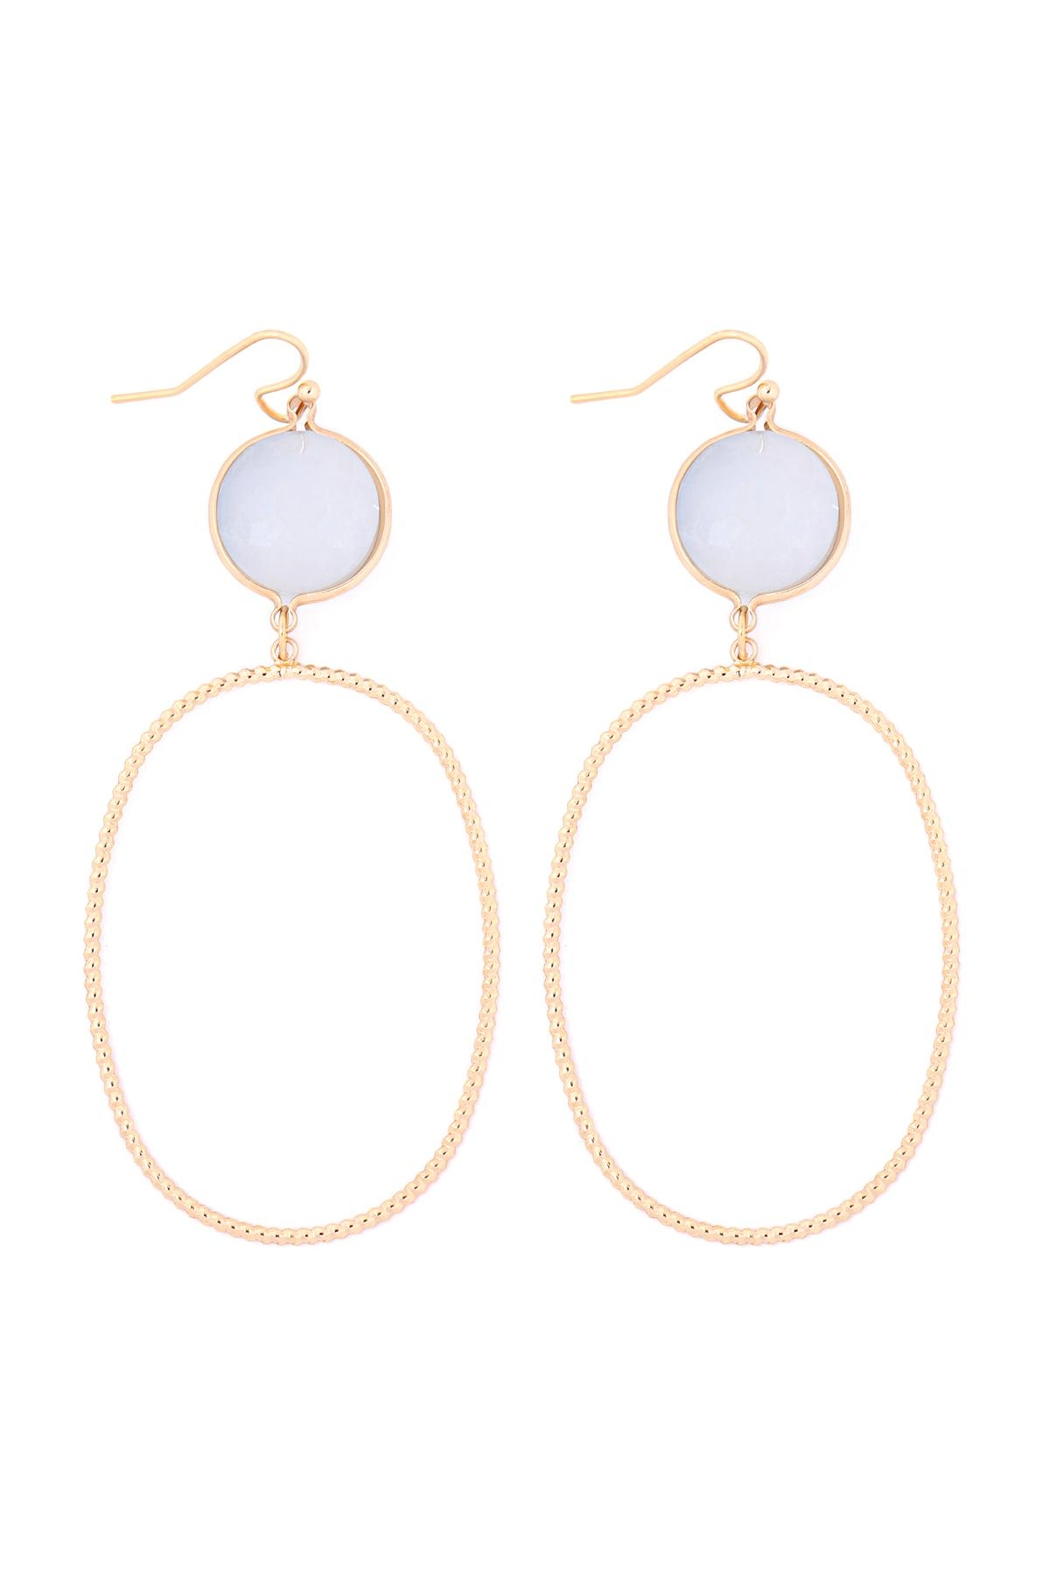 Riah Fashion Glass-Stone-Link-Open-Oval-Textured-Hook-Earrings - Front Cropped Image